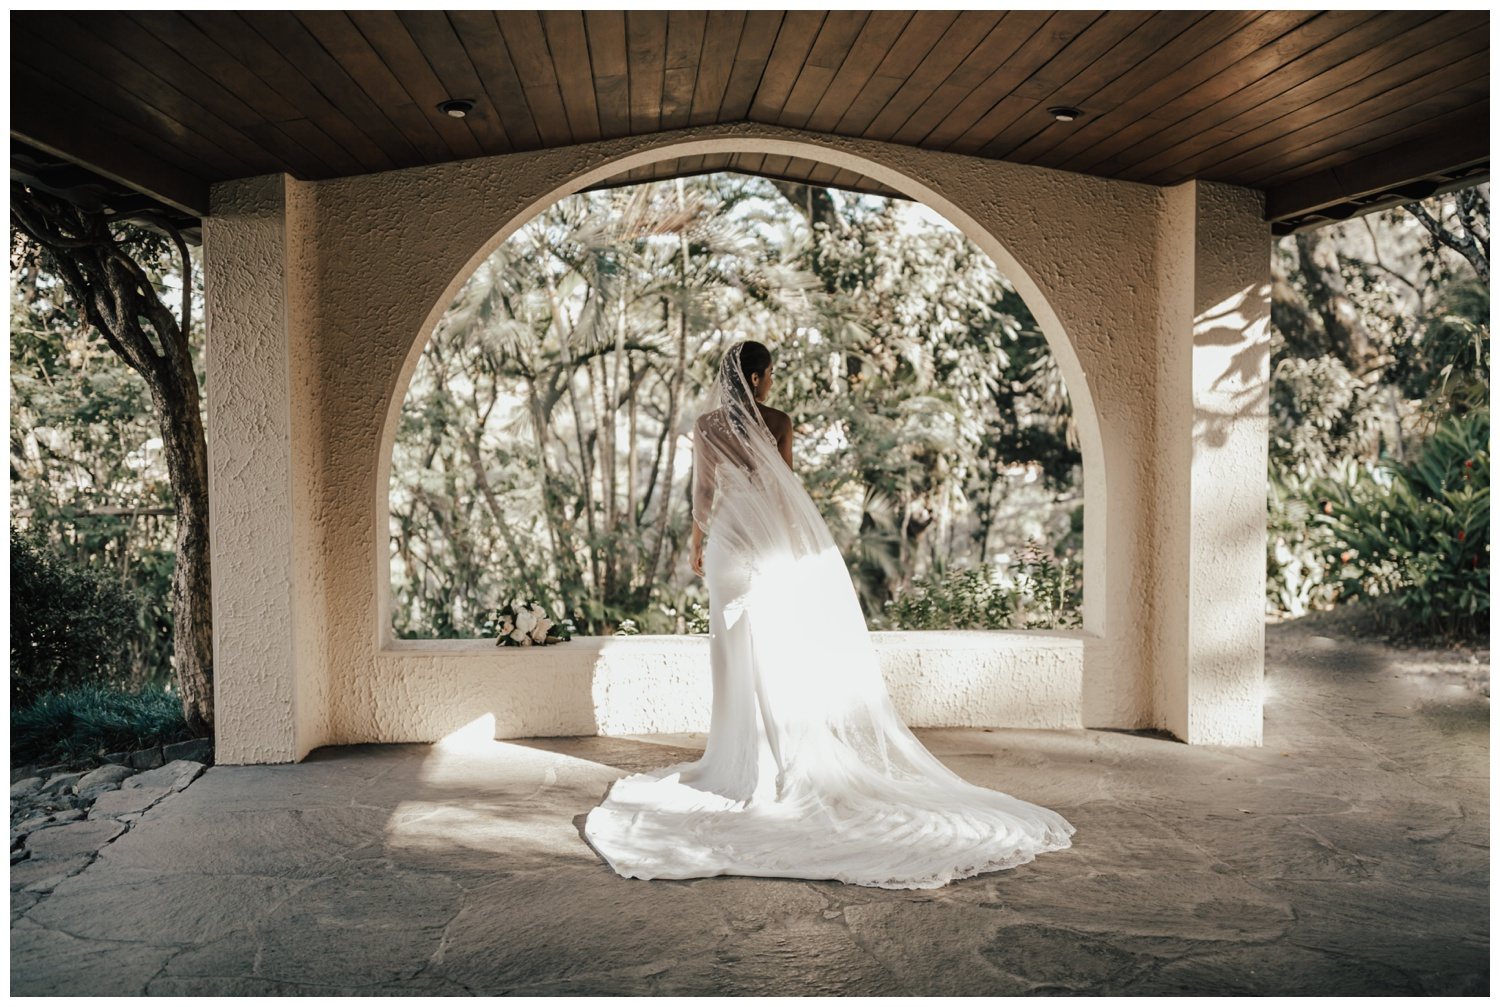 adriana_rivera_miranda_weddings_el_salvador_04.jpg